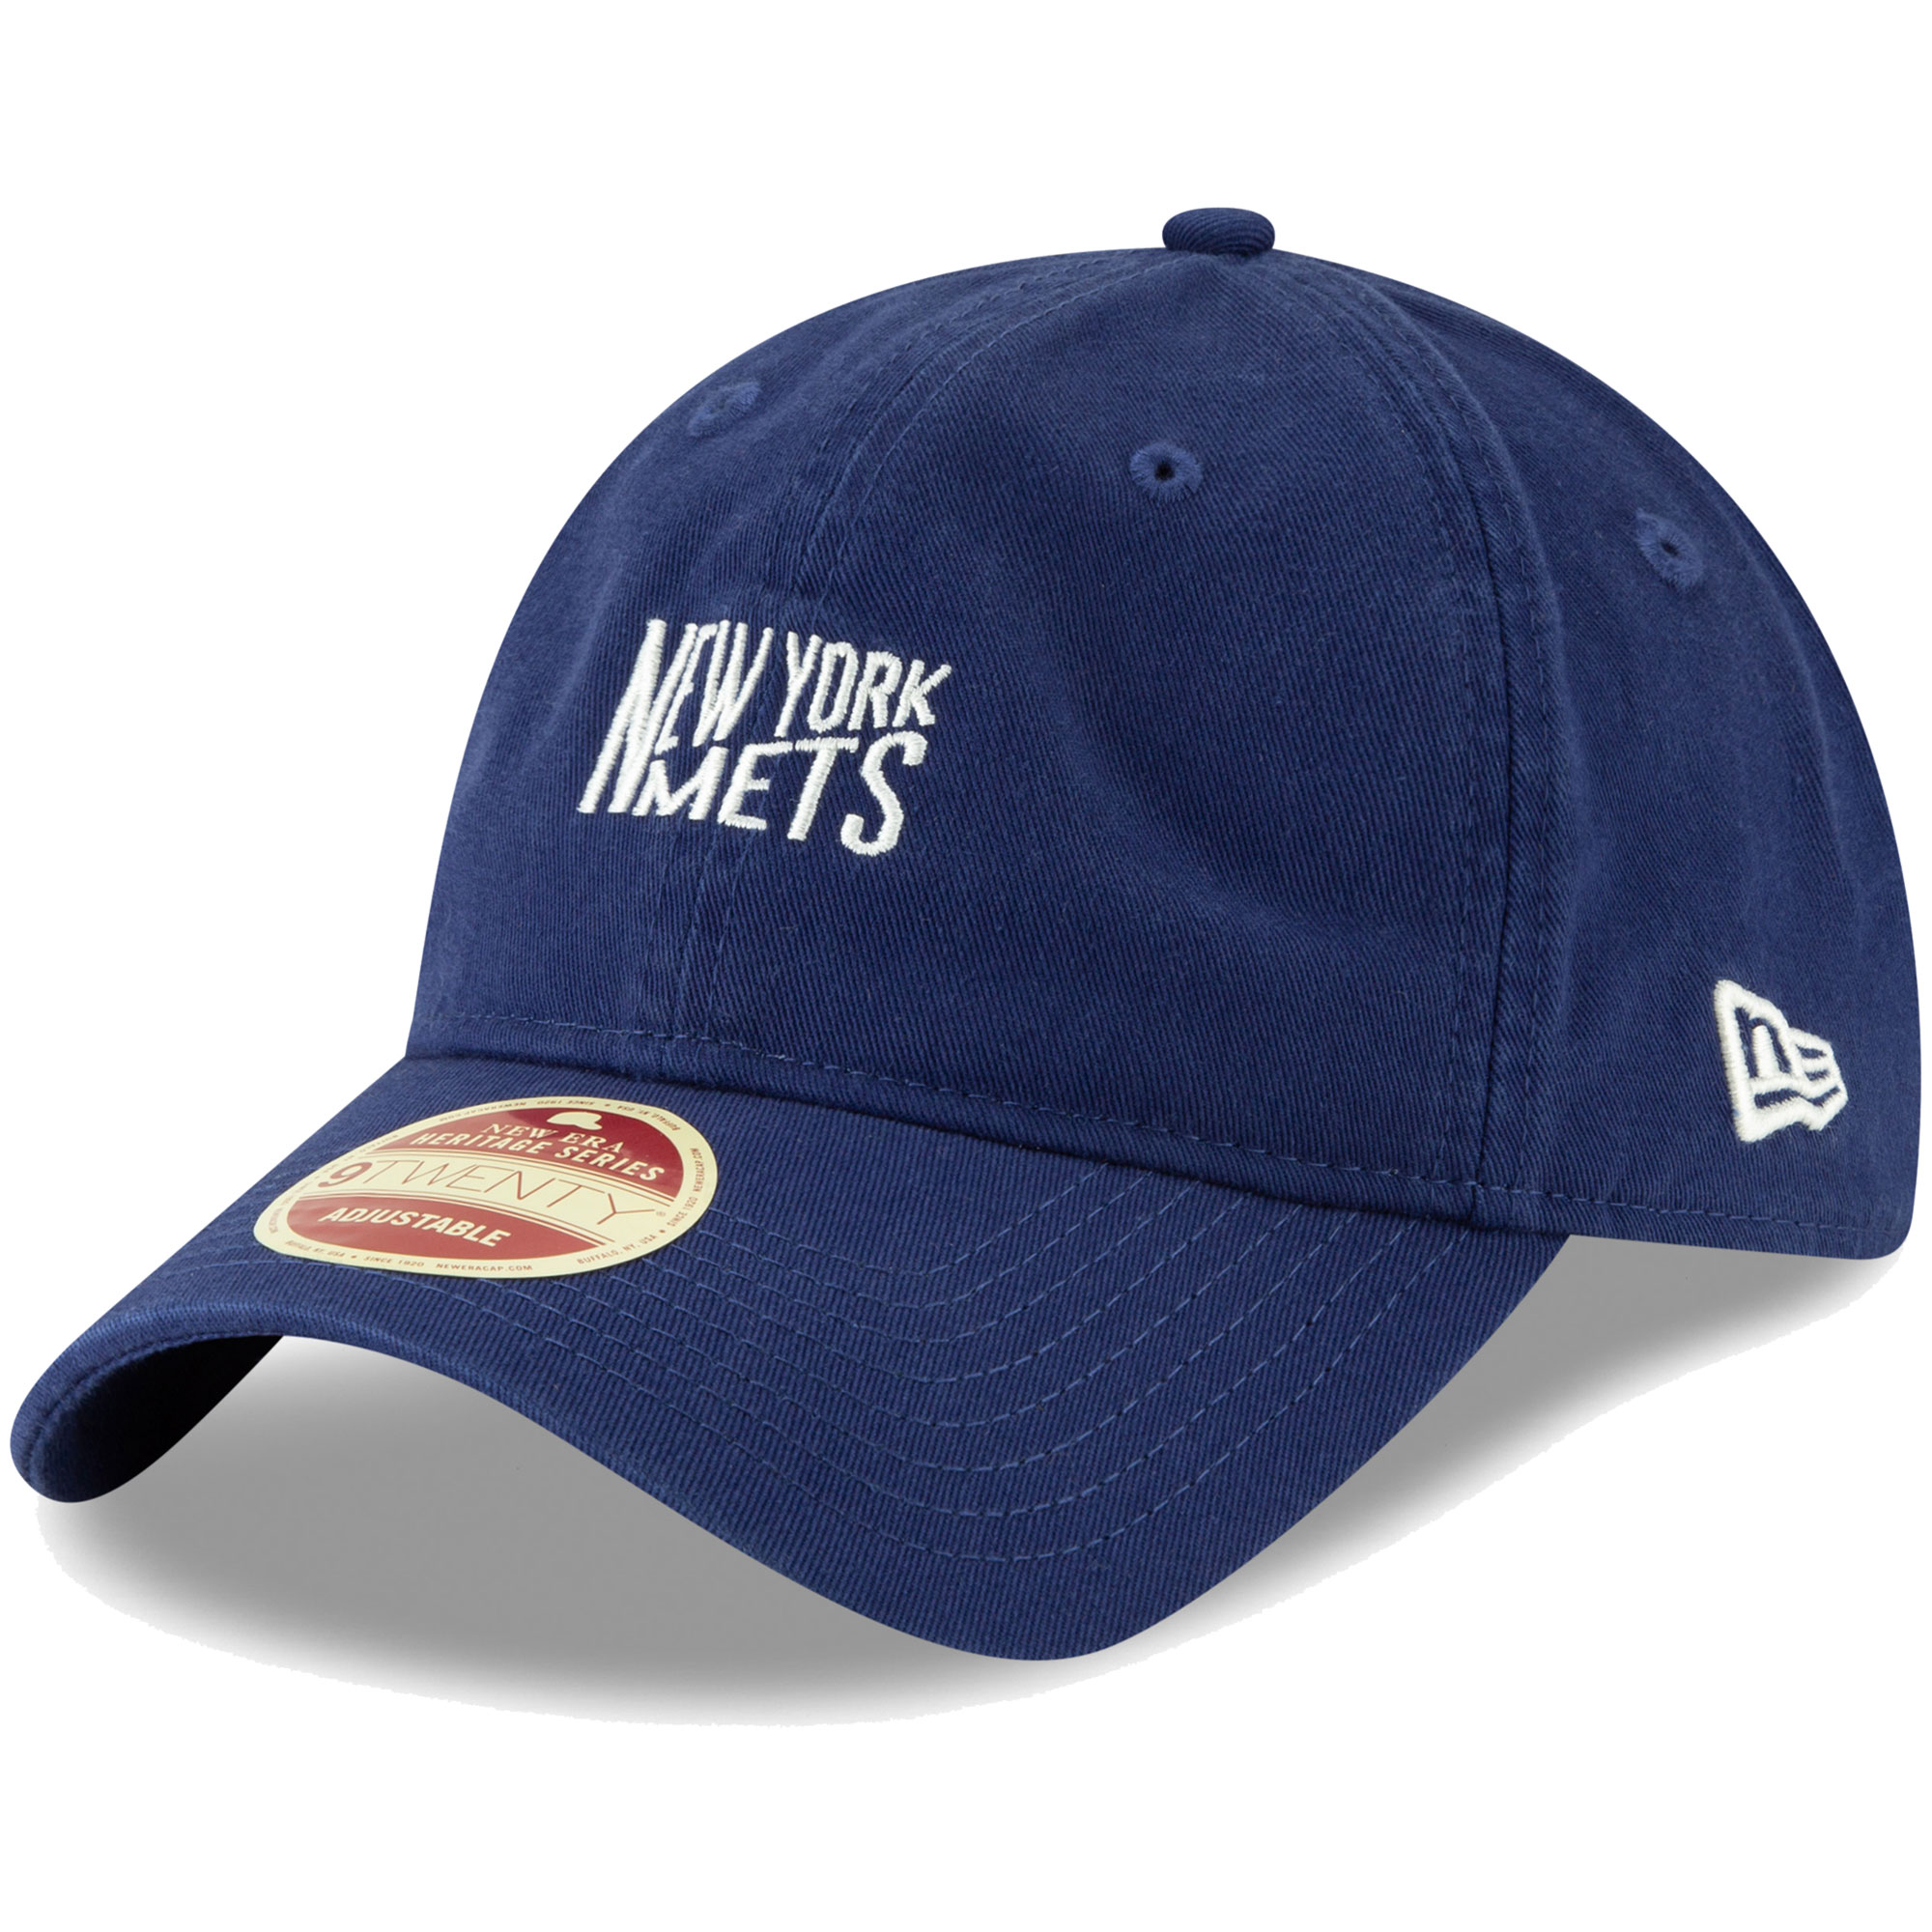 New York Mets New Era Cooperstown Collection Classic Front 9TWENTY Adjustable Hat - Royal - OSFA